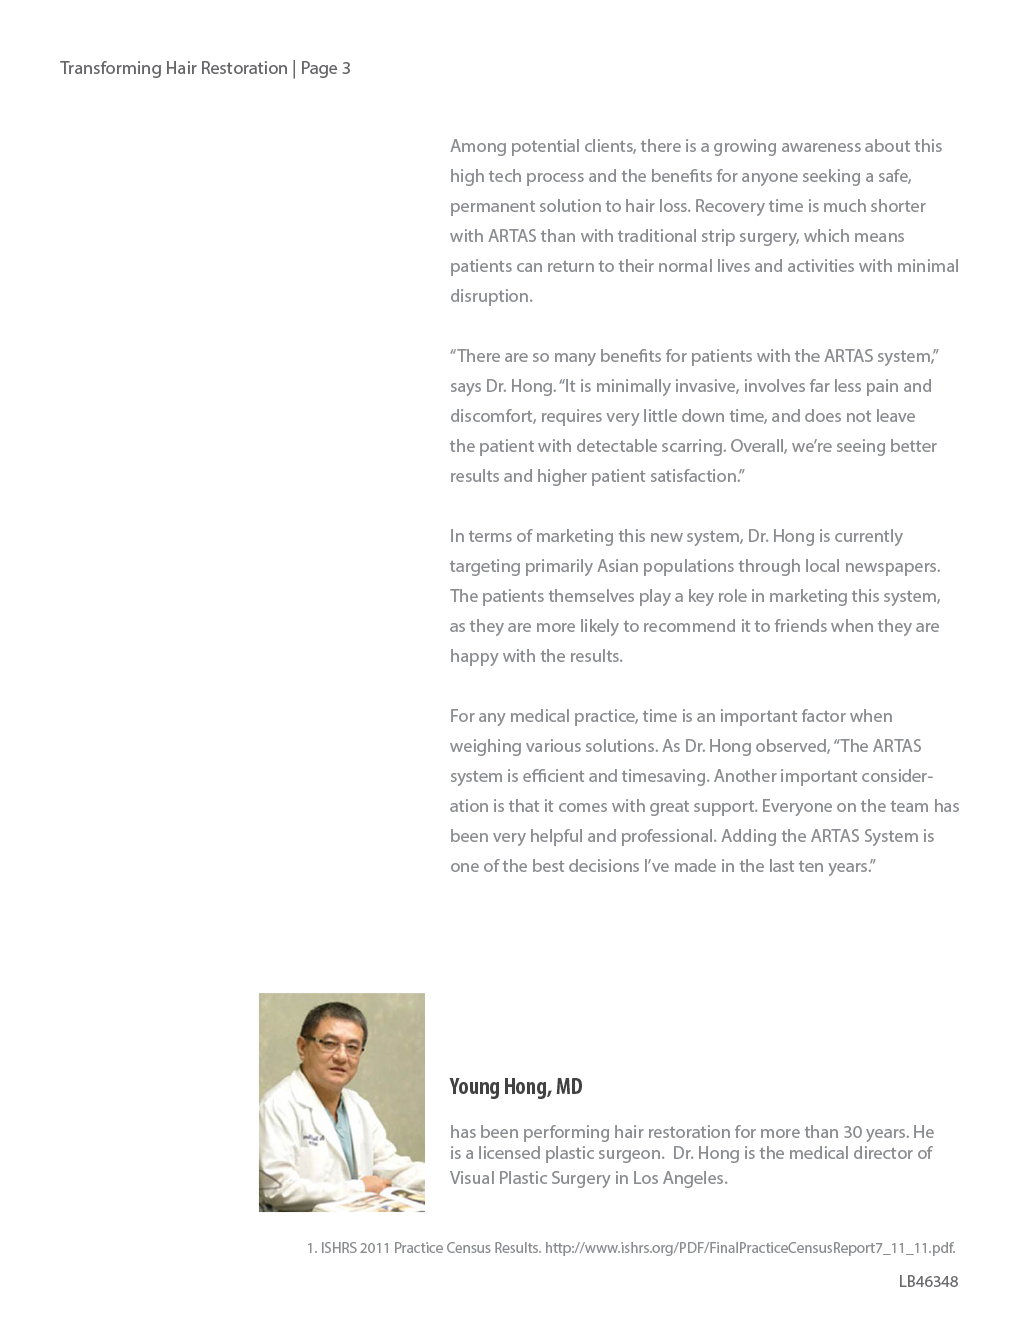 Transforming Hair Restoration through Precision Robotics and Advance Imaging by Dr. Young Hong 3 1